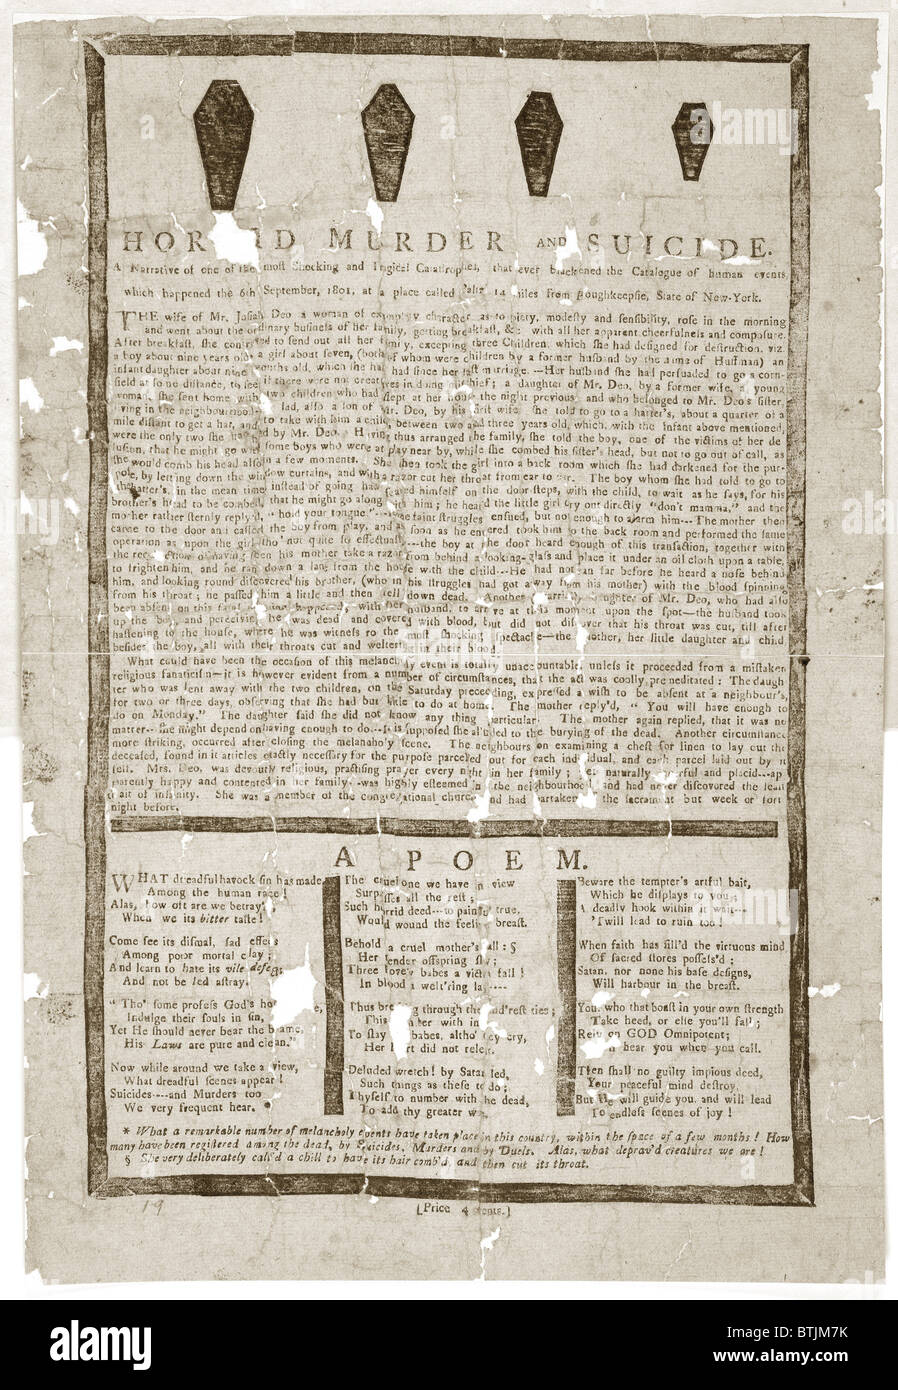 Souvenir of a murder with coffin drawings and poem detailing the events, description of a murder and suicide on - Stock Image